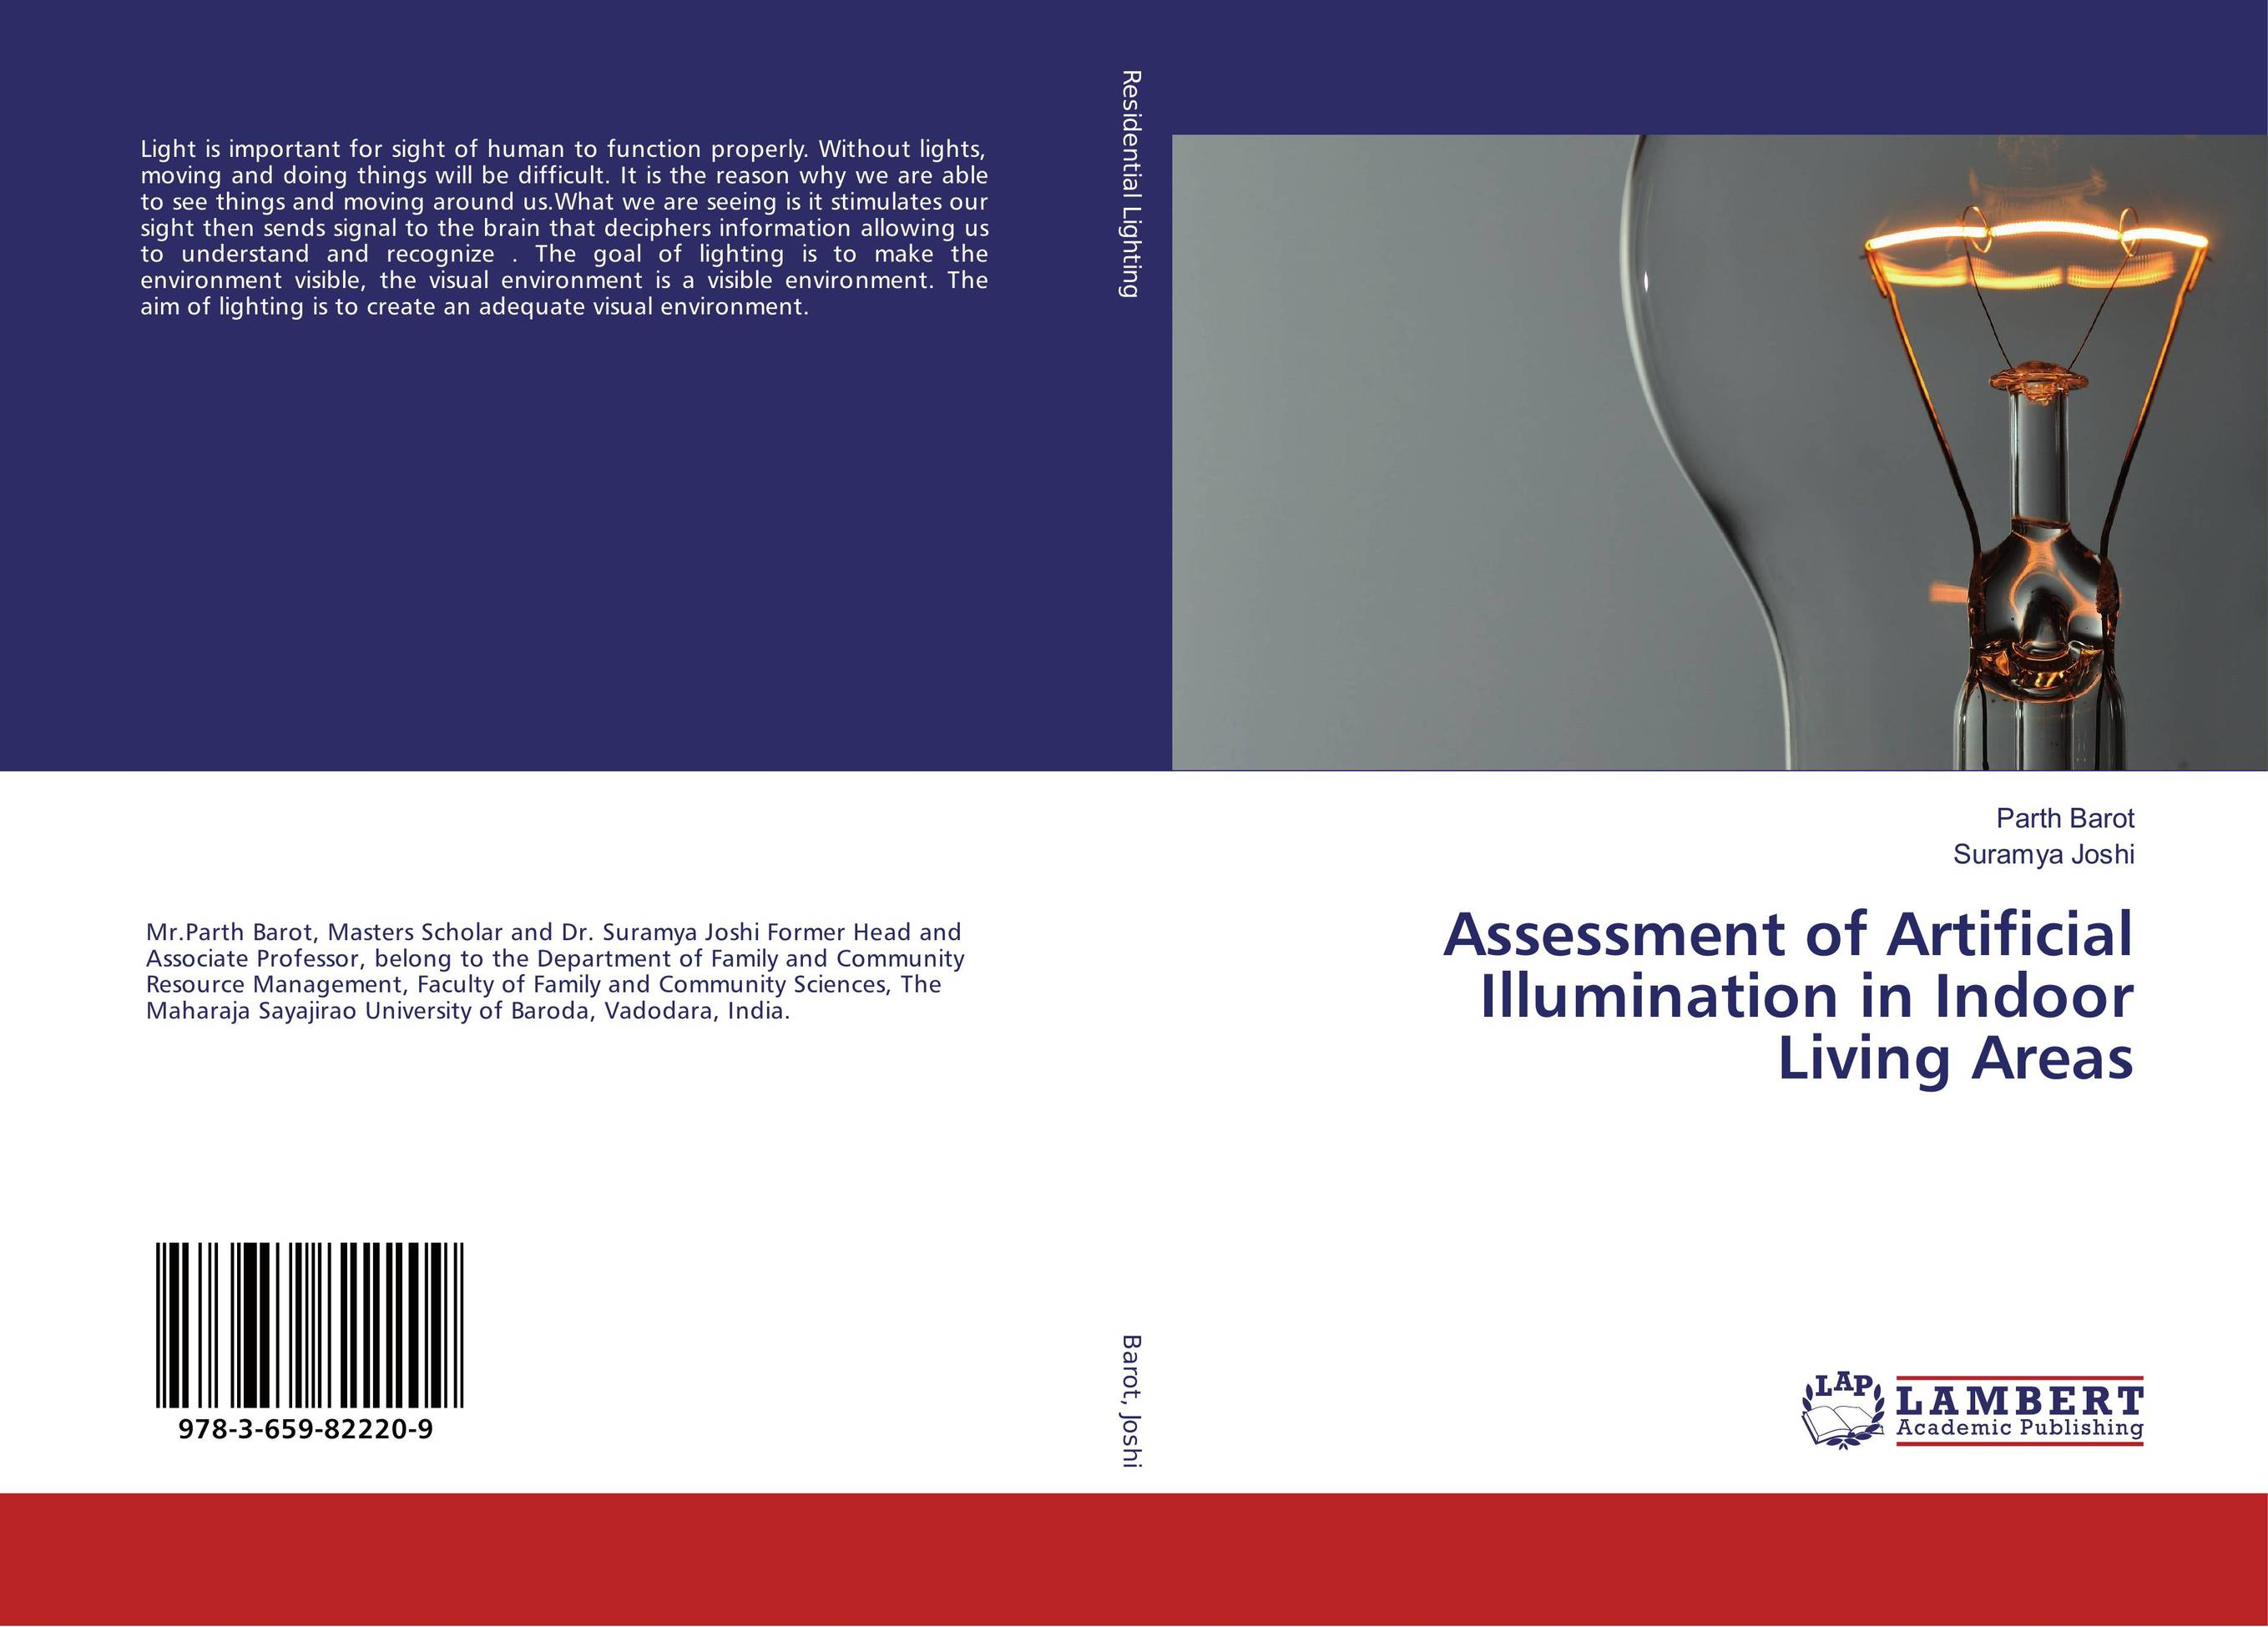 Assessment of Artificial Illumination in Indoor Living Areas